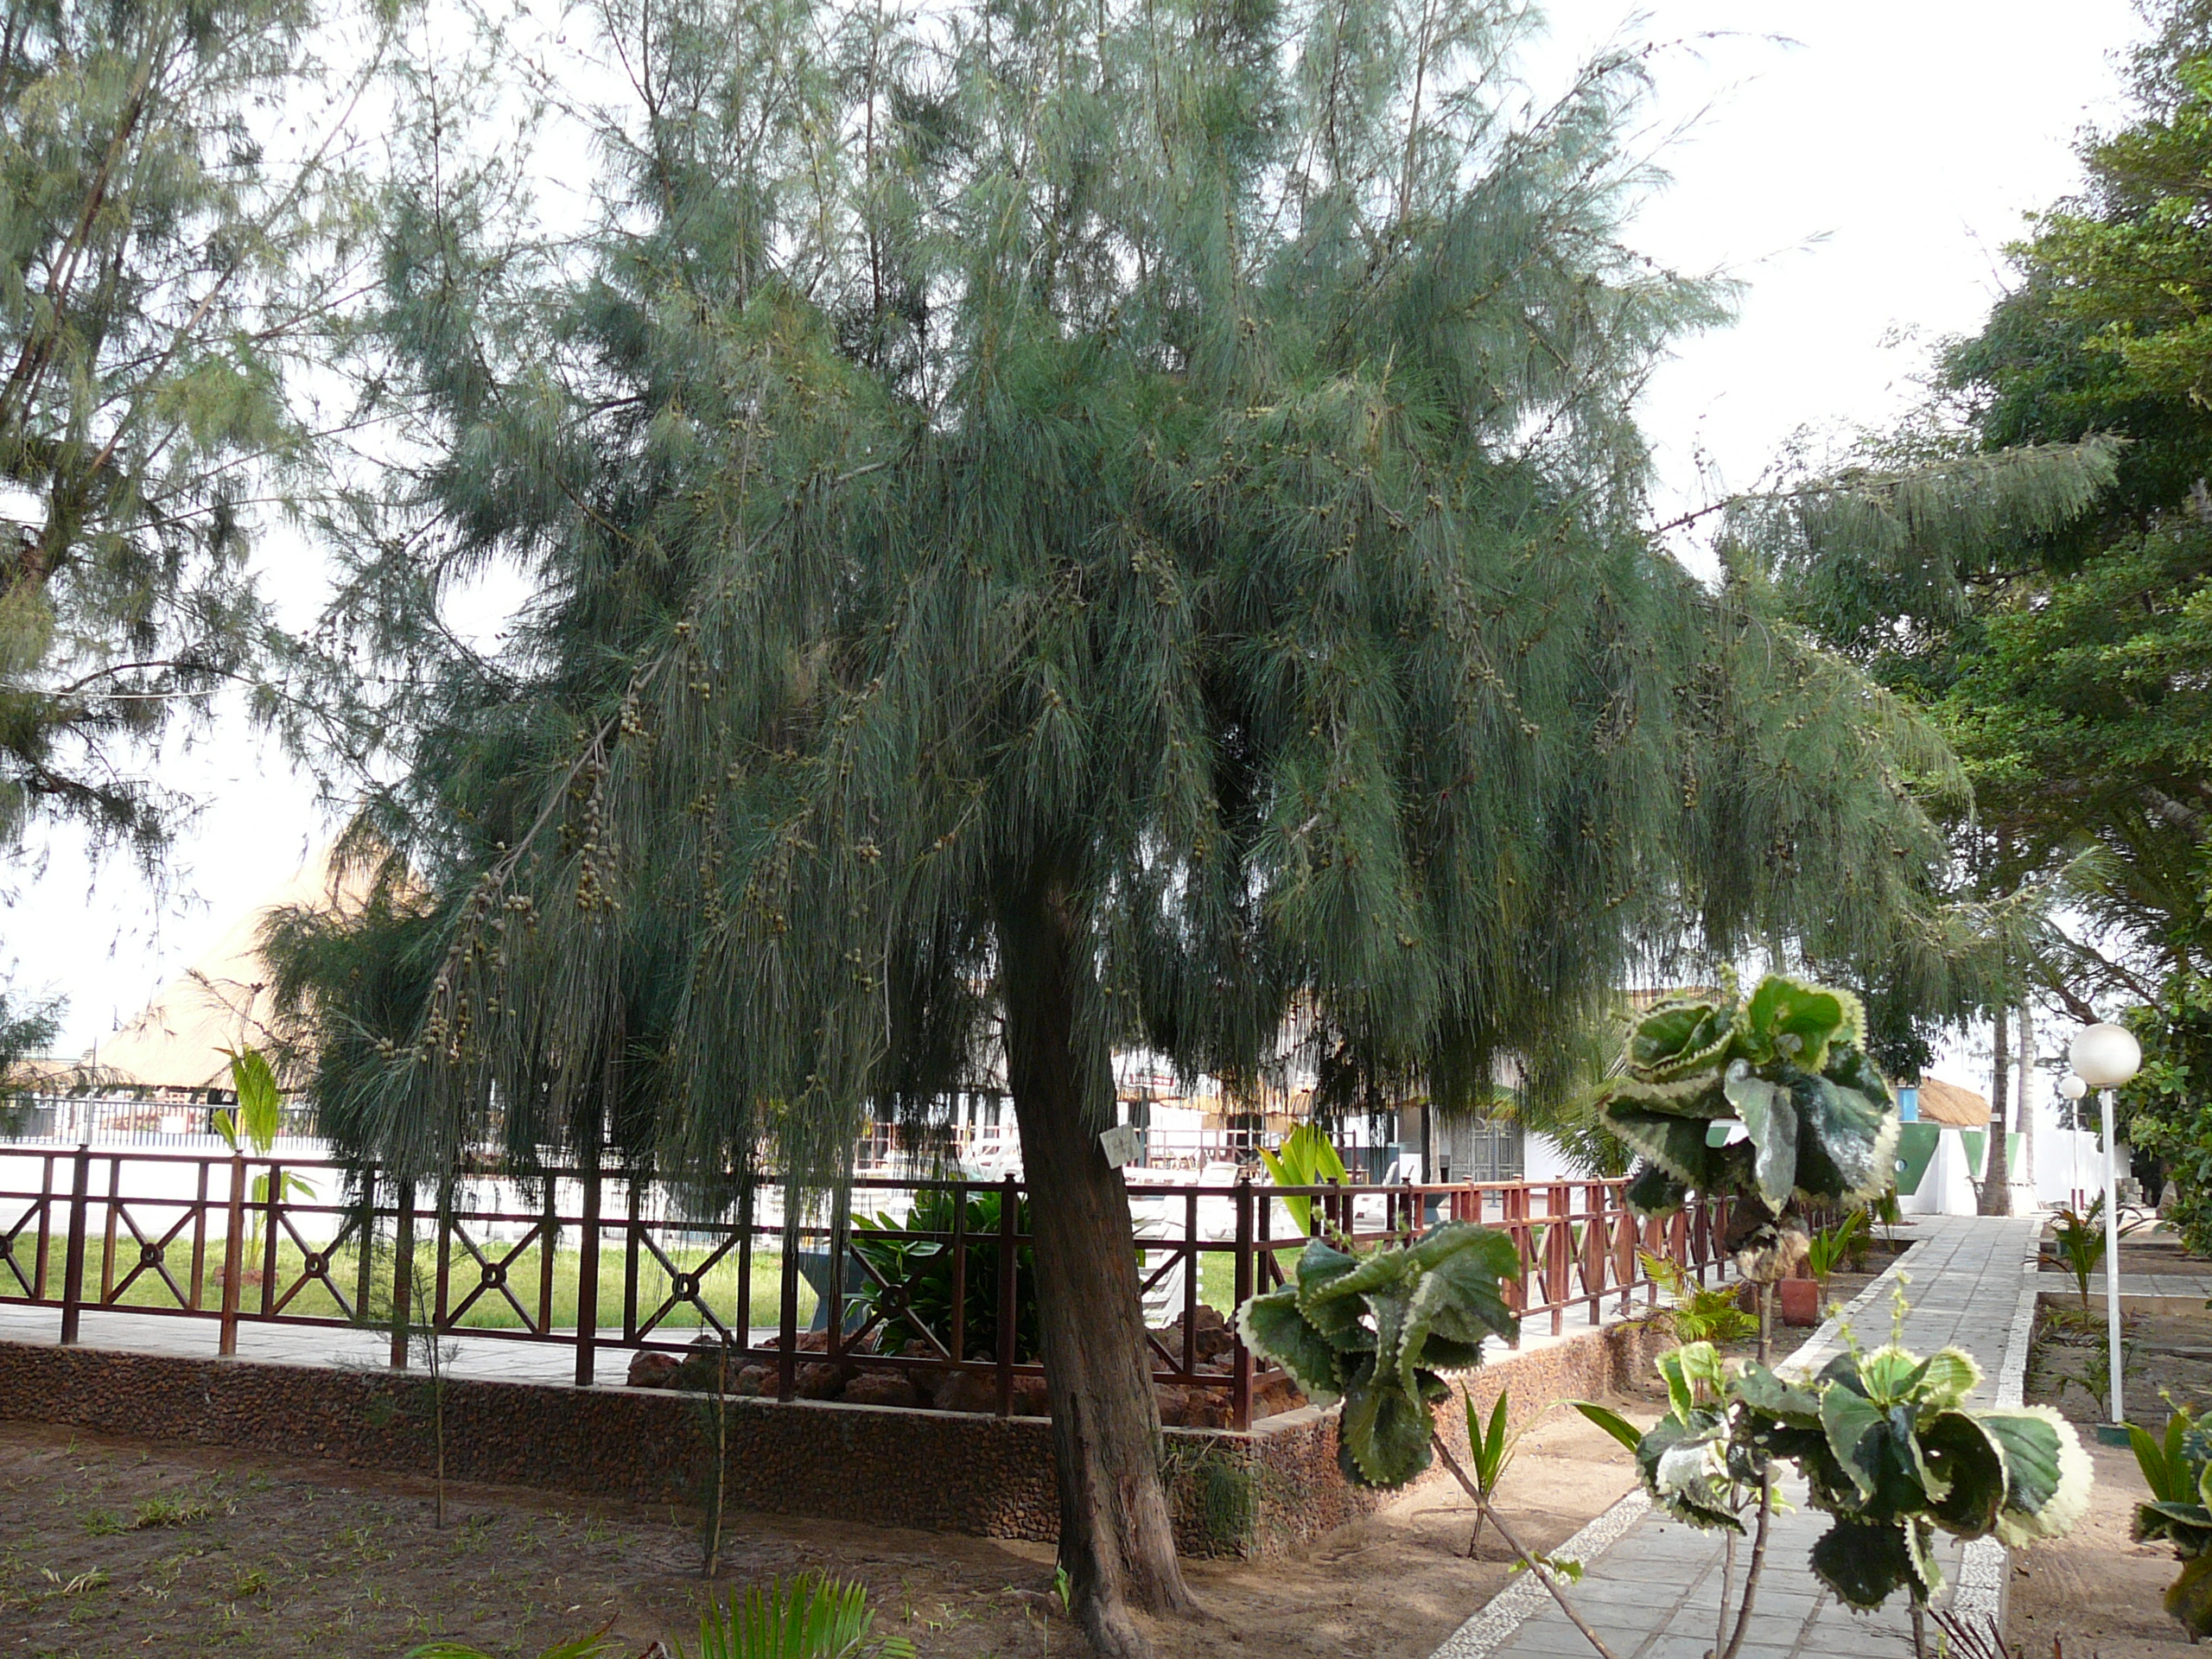 critical appreciation of the poem casuarina tree Critical appreciation of the poem casuarina tree our casuarina tree our casuarina tree is a poem by toru dutt, an indian poetthe poem gives an objective description of the tree and the charm associated with poet's childhood.